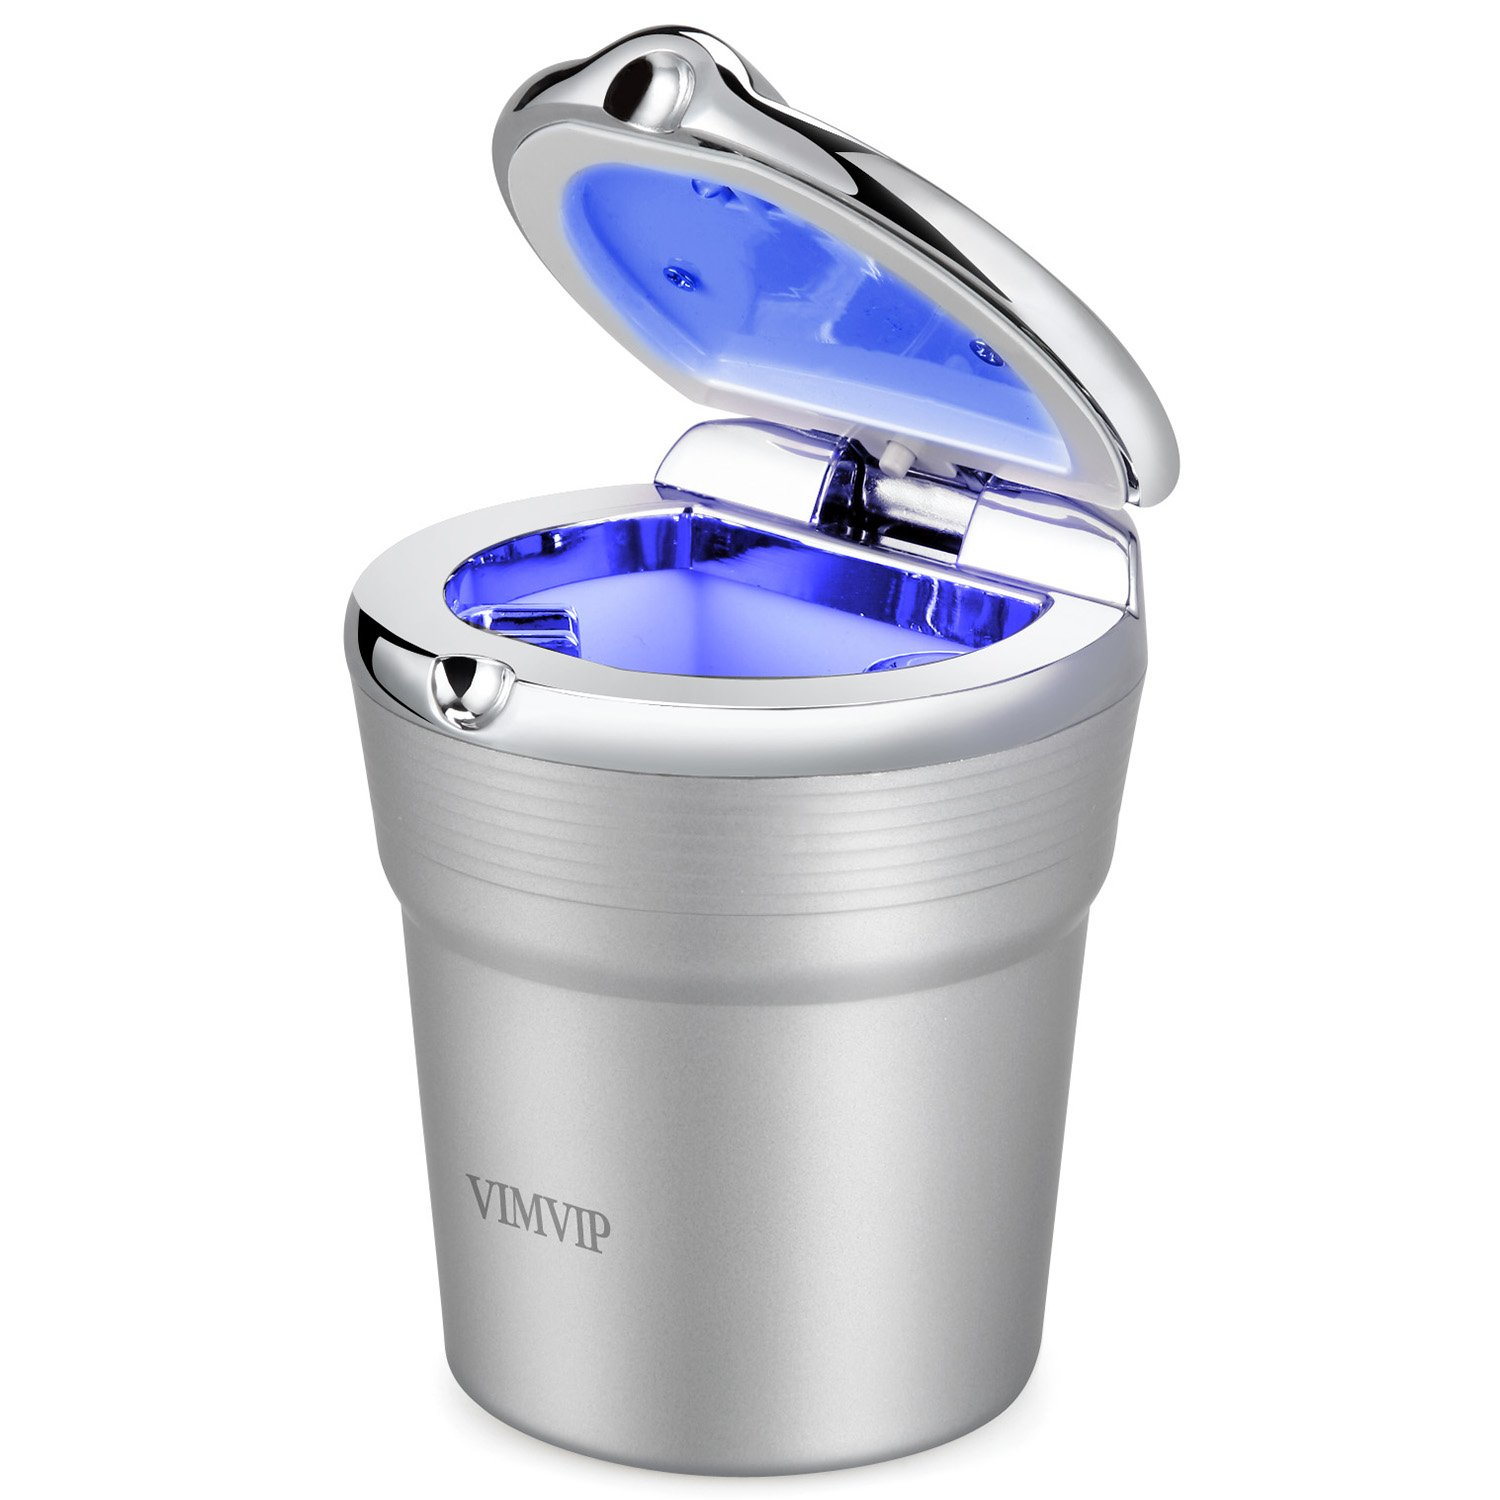 VIMVIP Portable Stainless Cigarette Smokeless